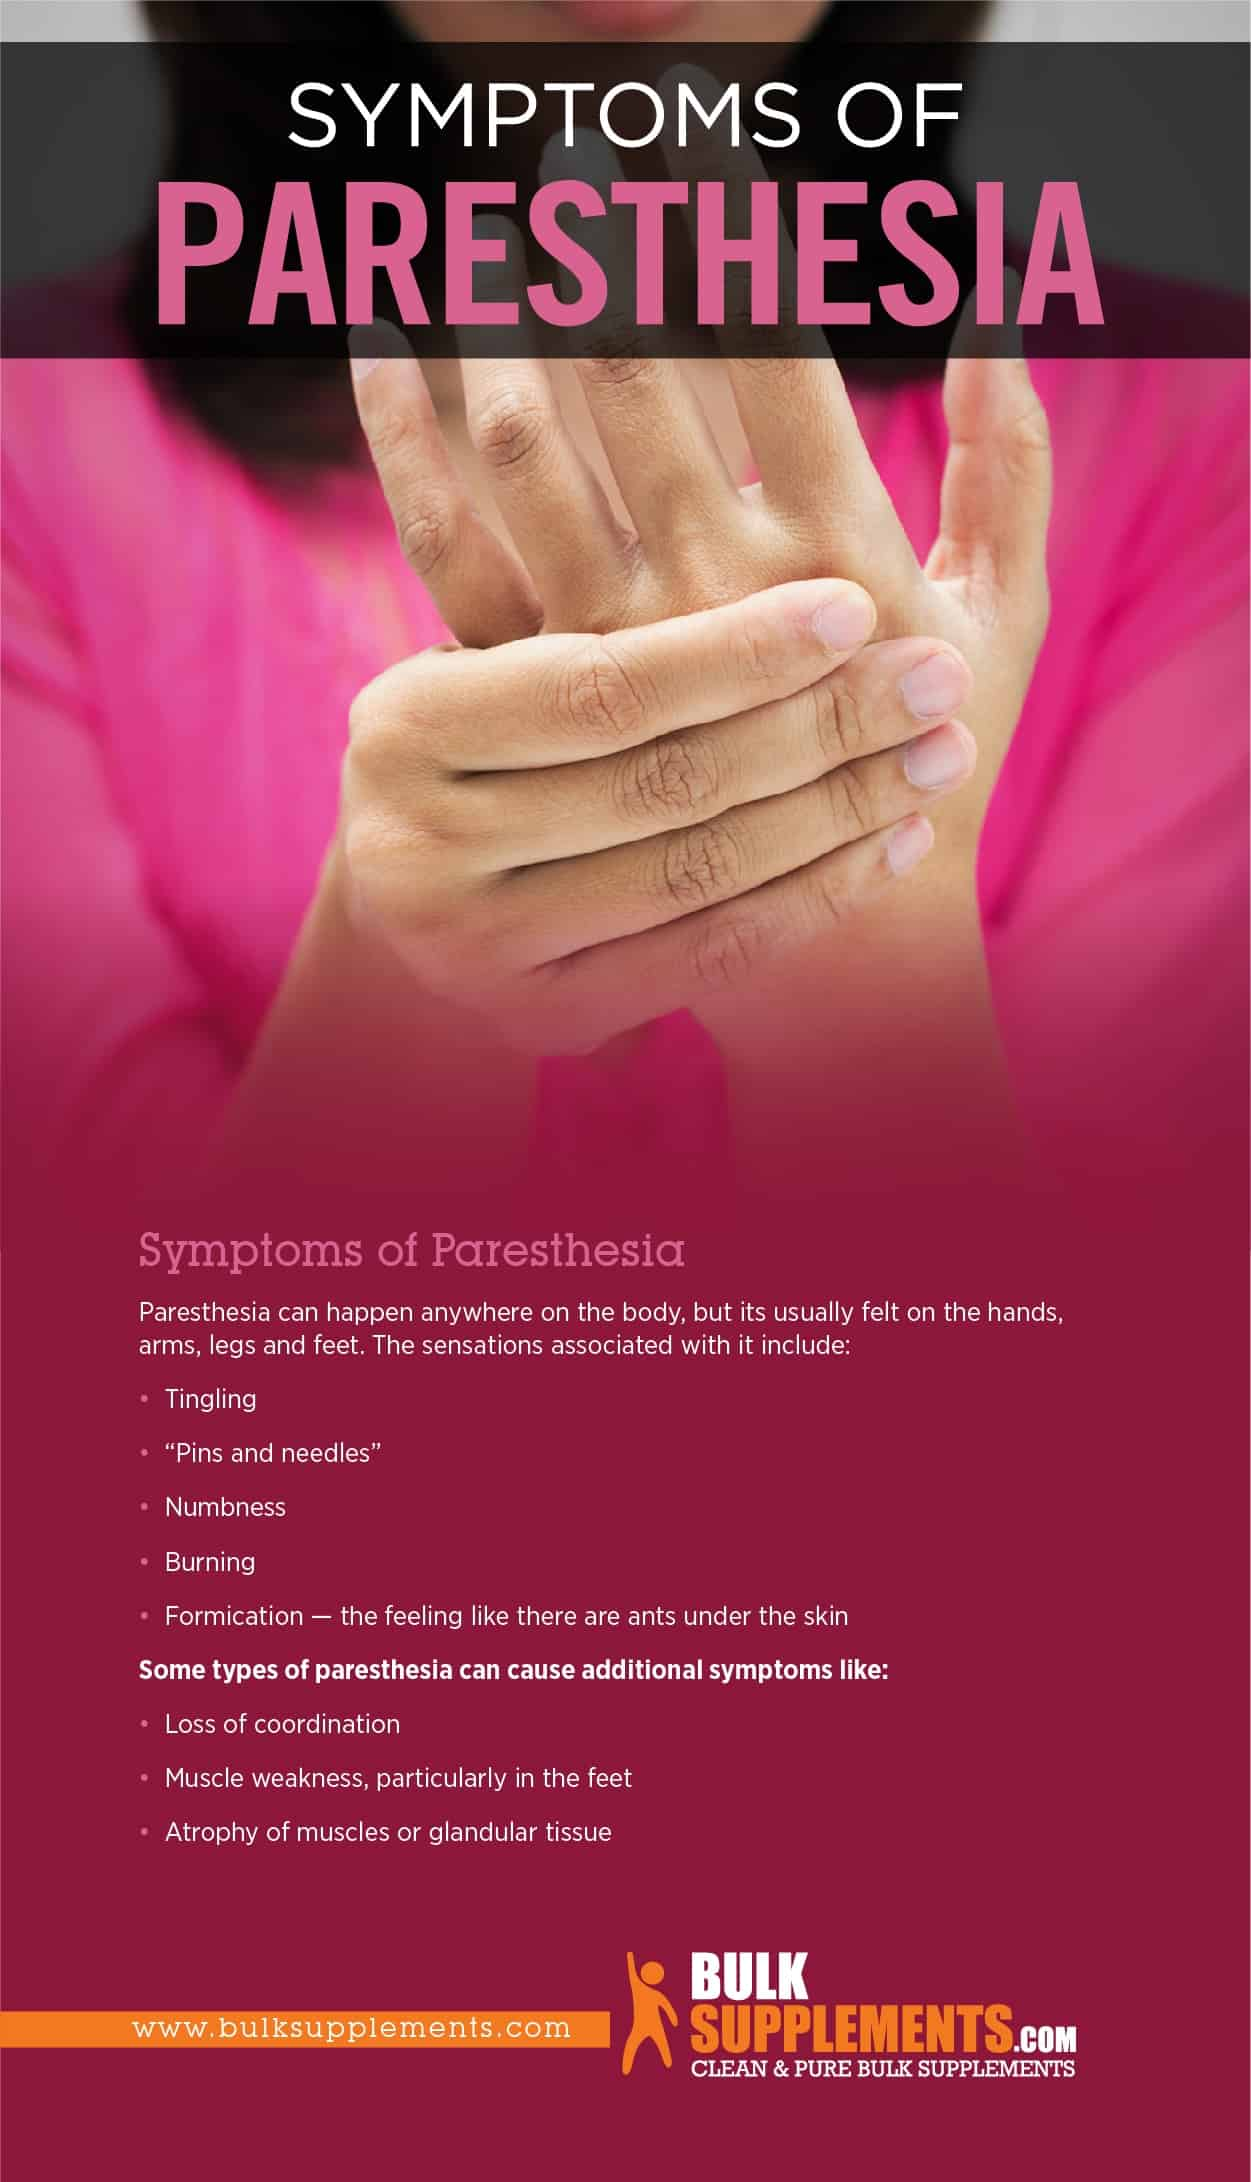 Symptoms of Paresthesia